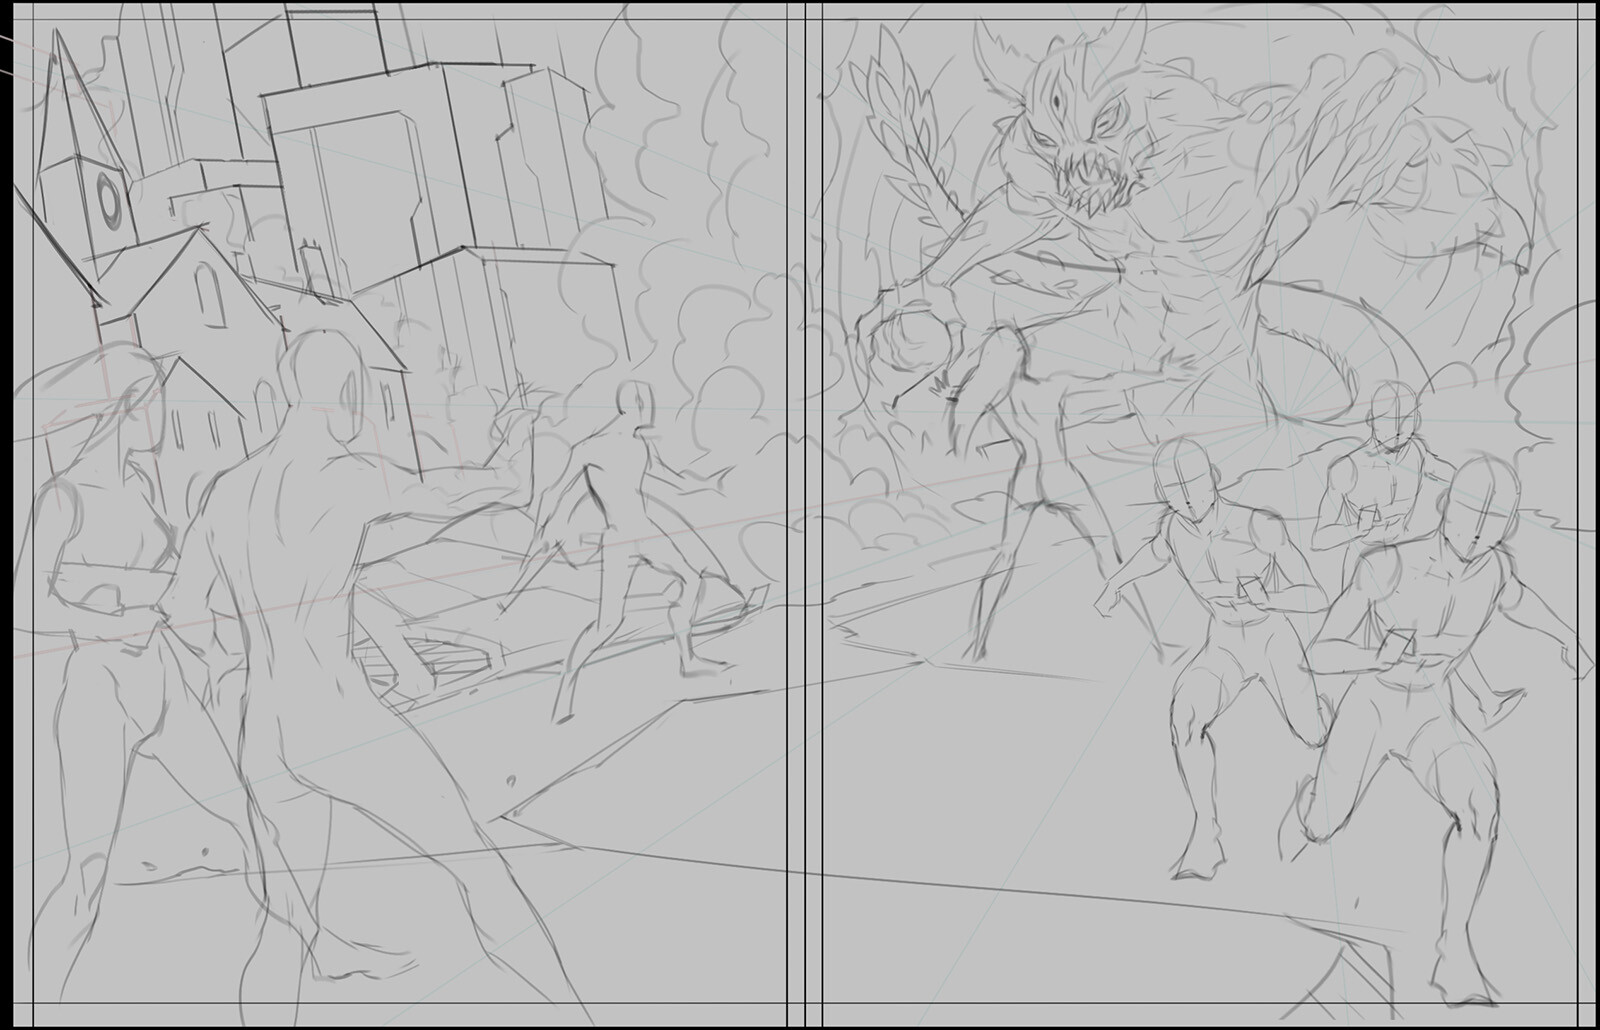 Rough composition and character placement